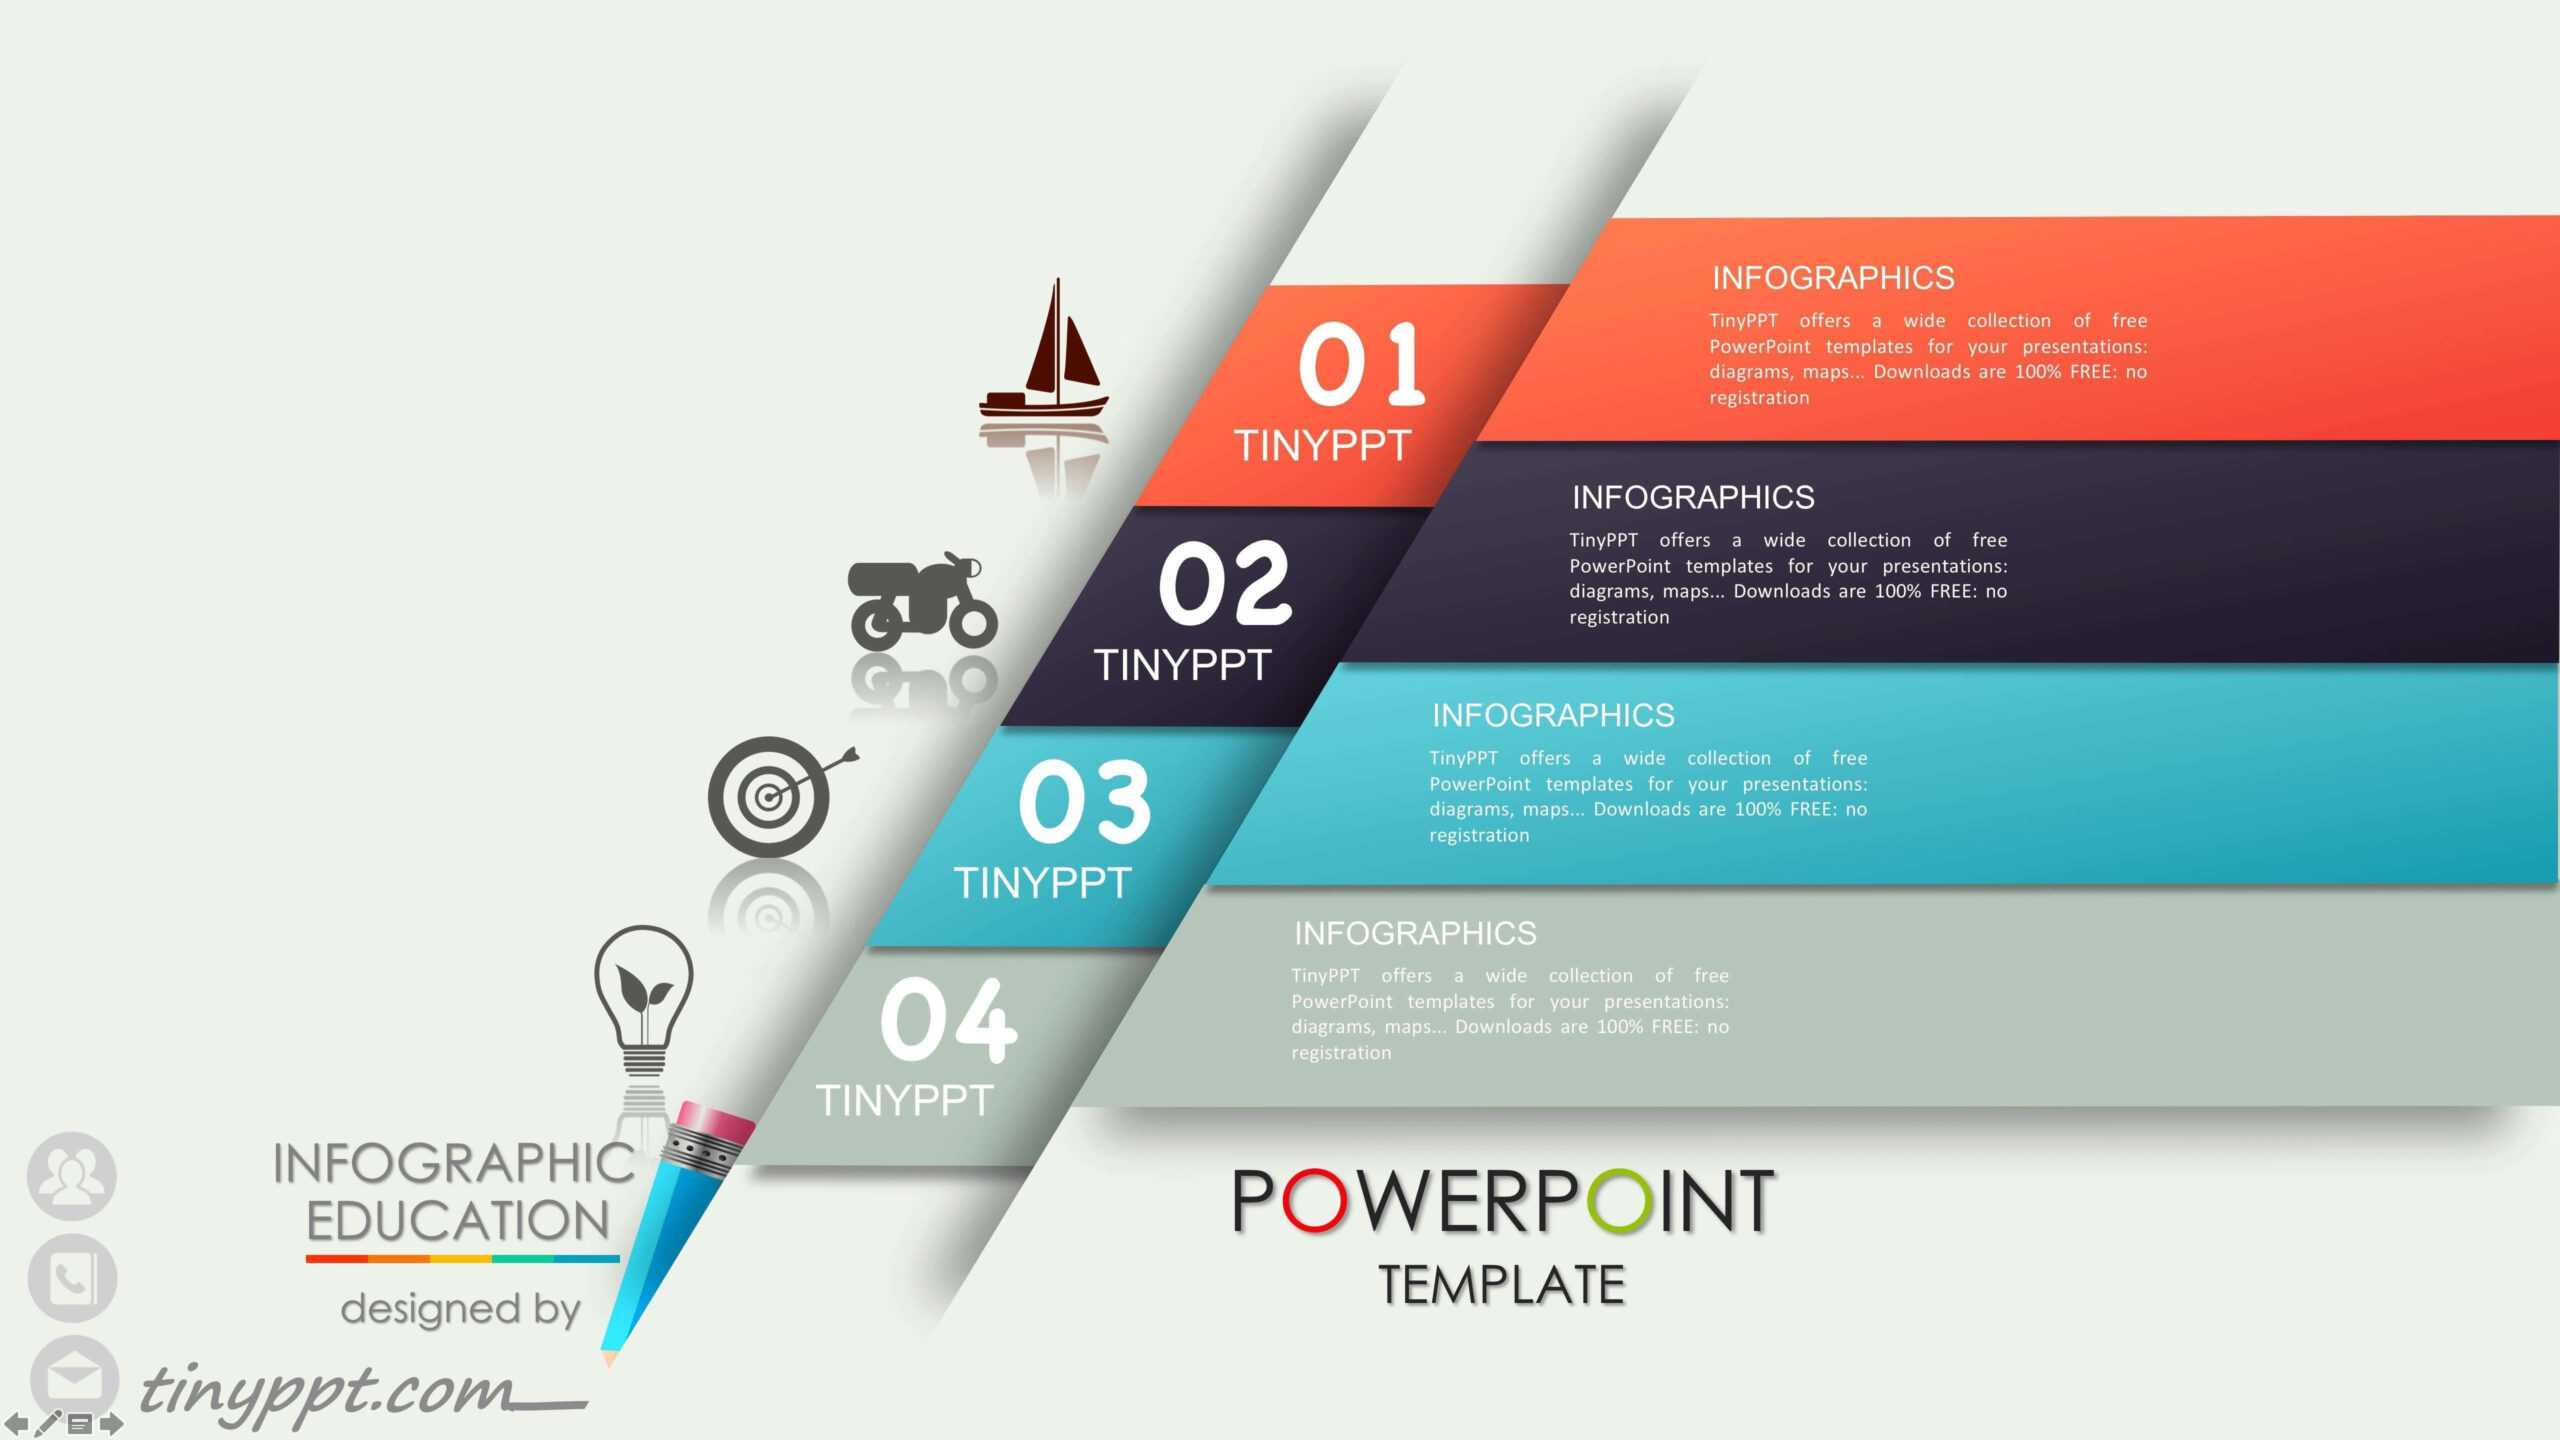 Change Infographic – Elegant ¢Ë†å¡ How To Change Powerpoint Inside How To Change Template In Powerpoint